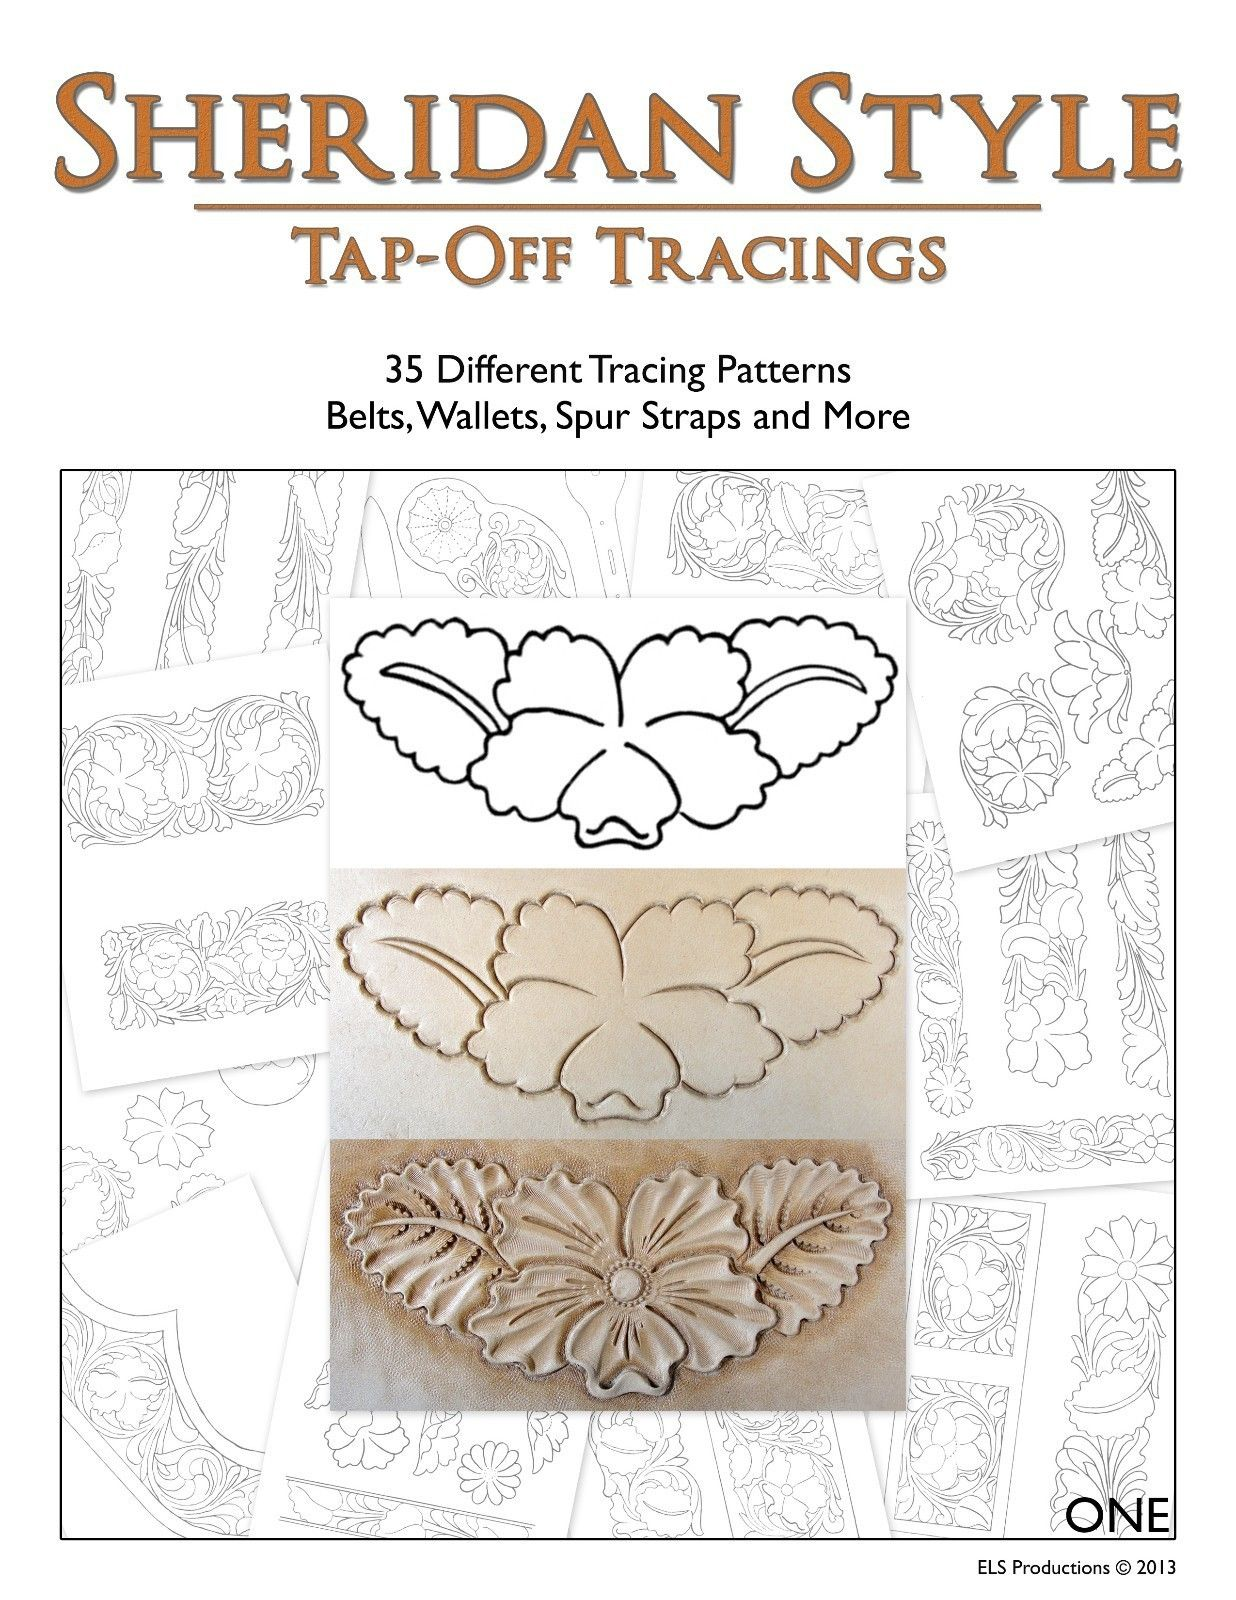 Sheridan Style Tap-Off Tracings - 35 Different Patterns [Digital Download]